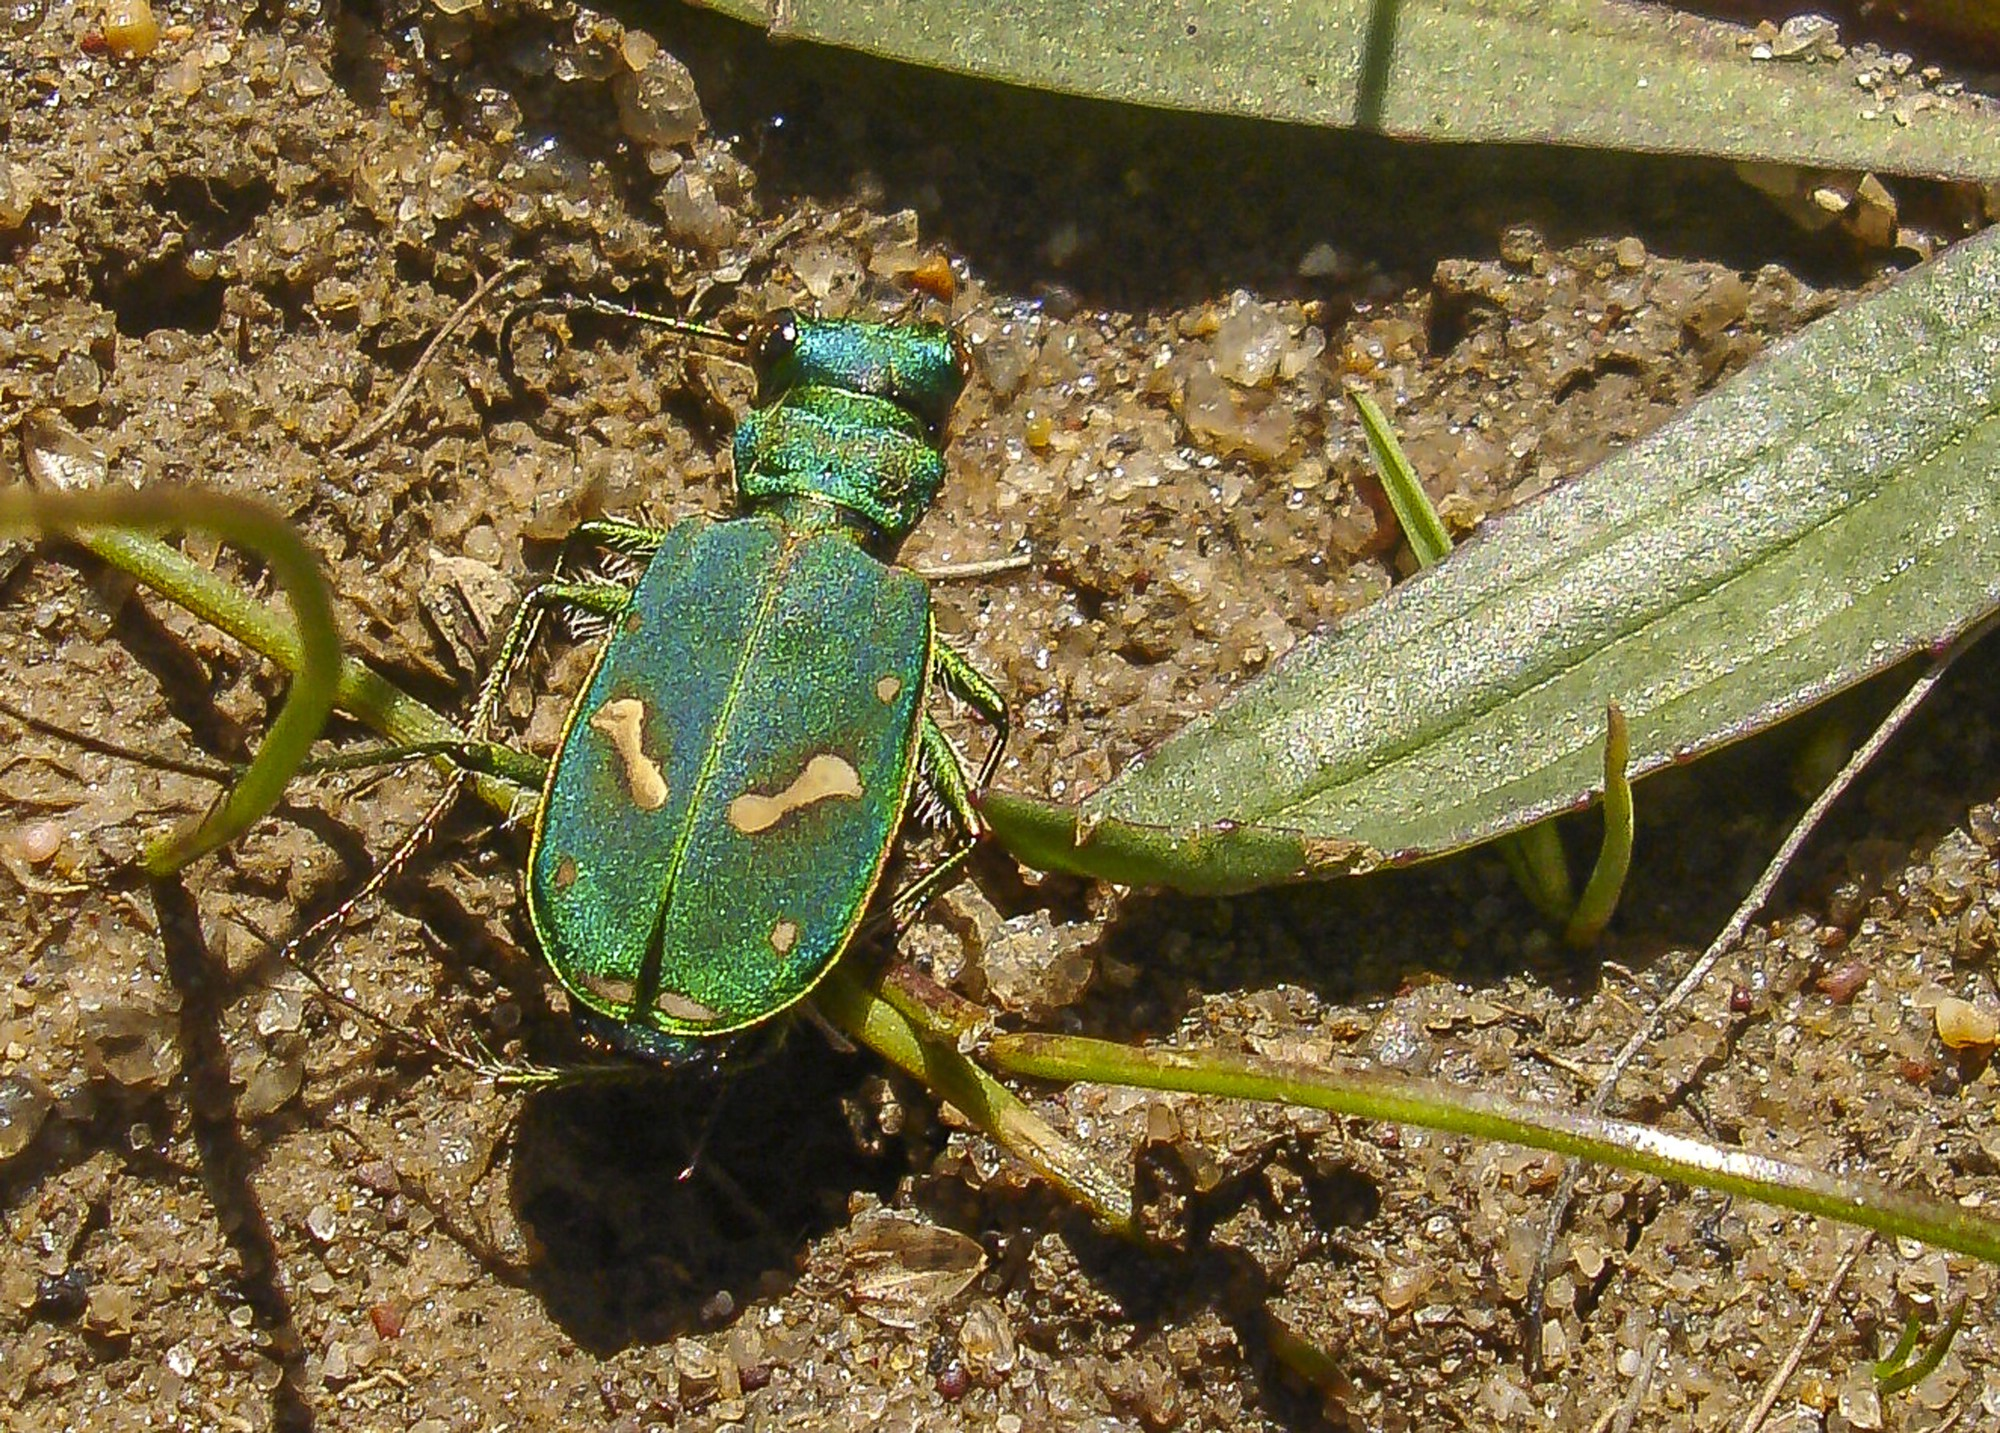 a vibrant emerald green beetle on the ground